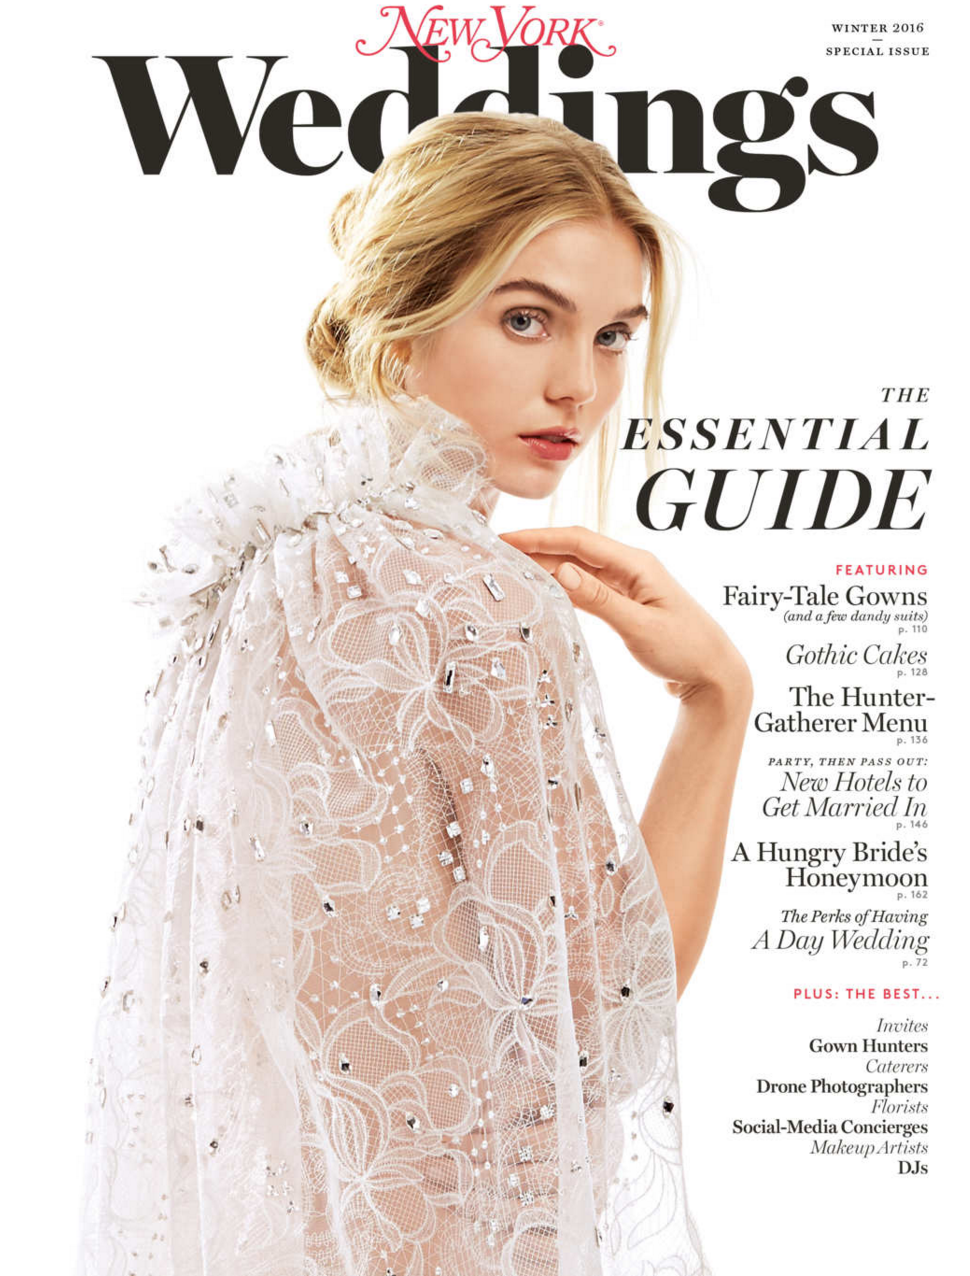 New York Weddings Winter 2016